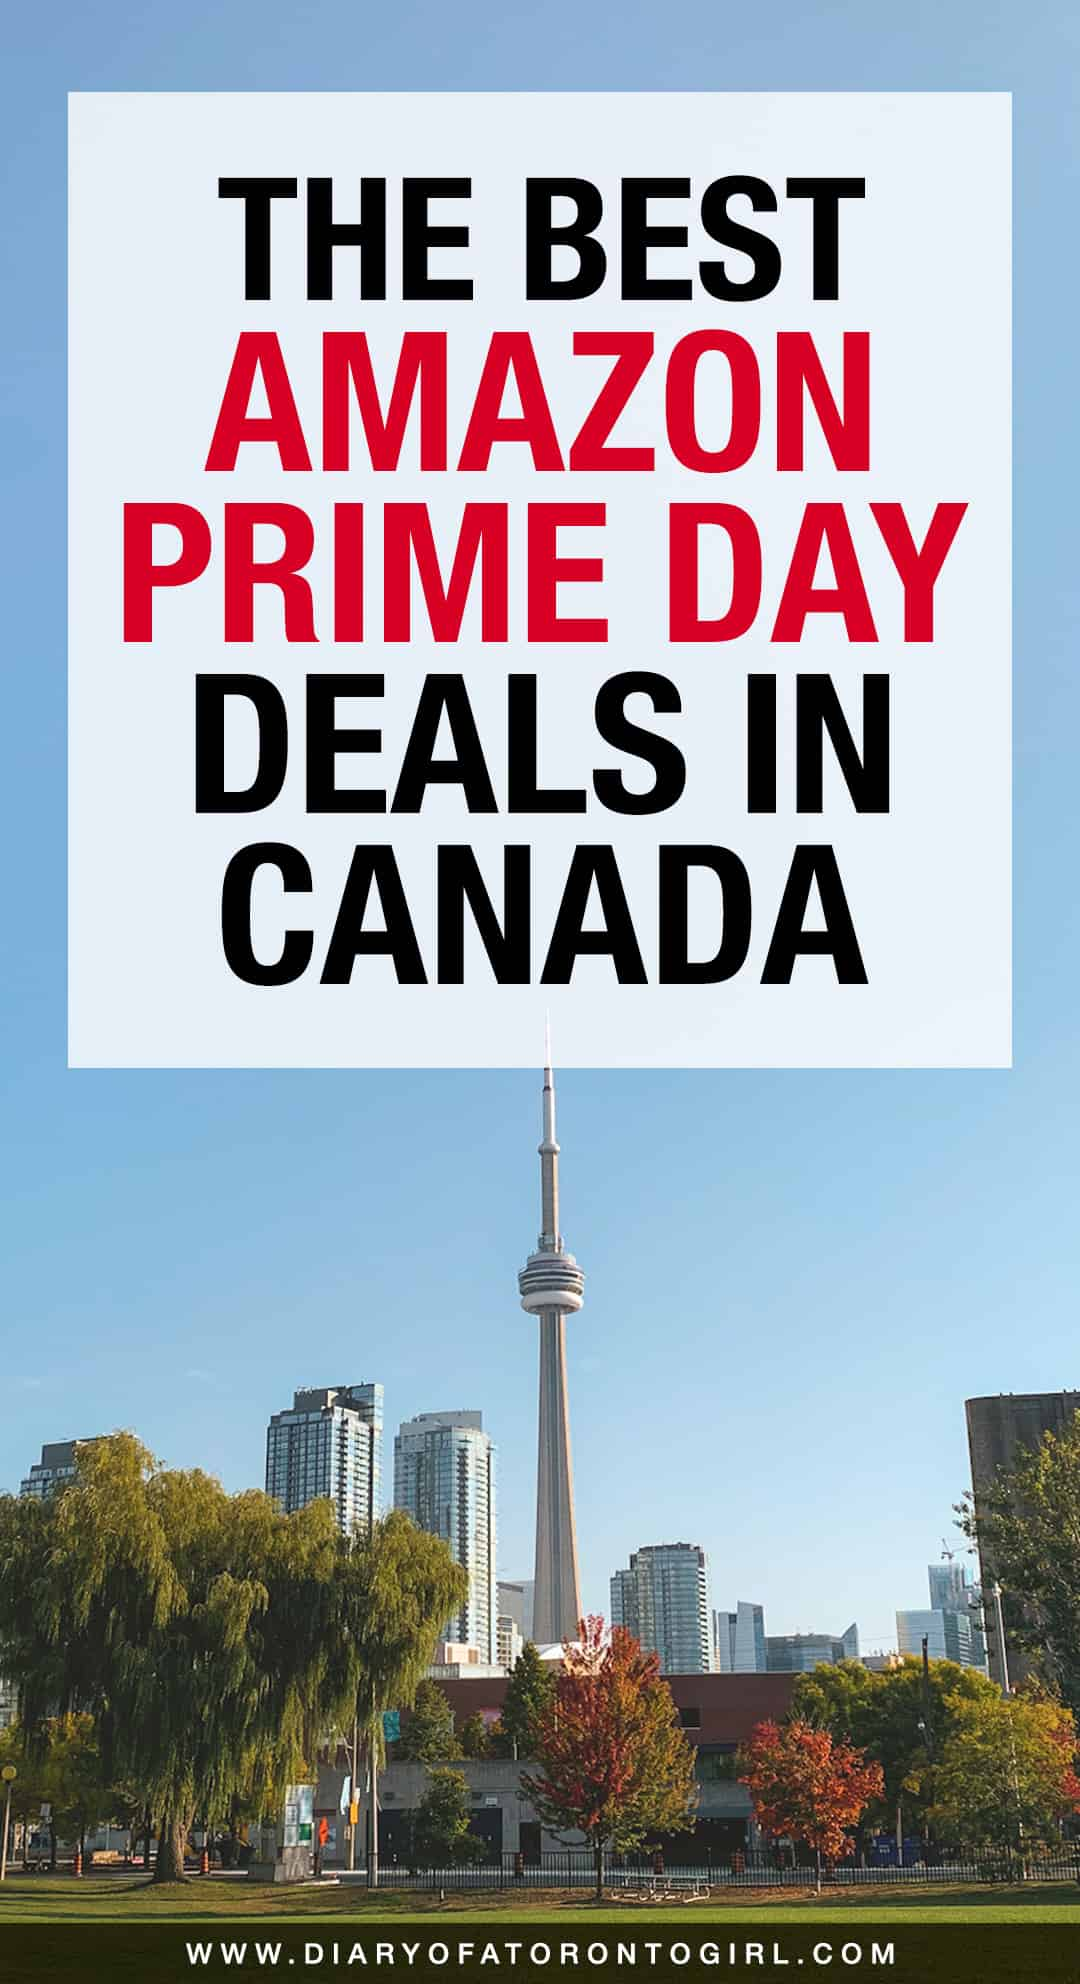 The best Amazon Prime Day 2020 deals to shop in Canada!